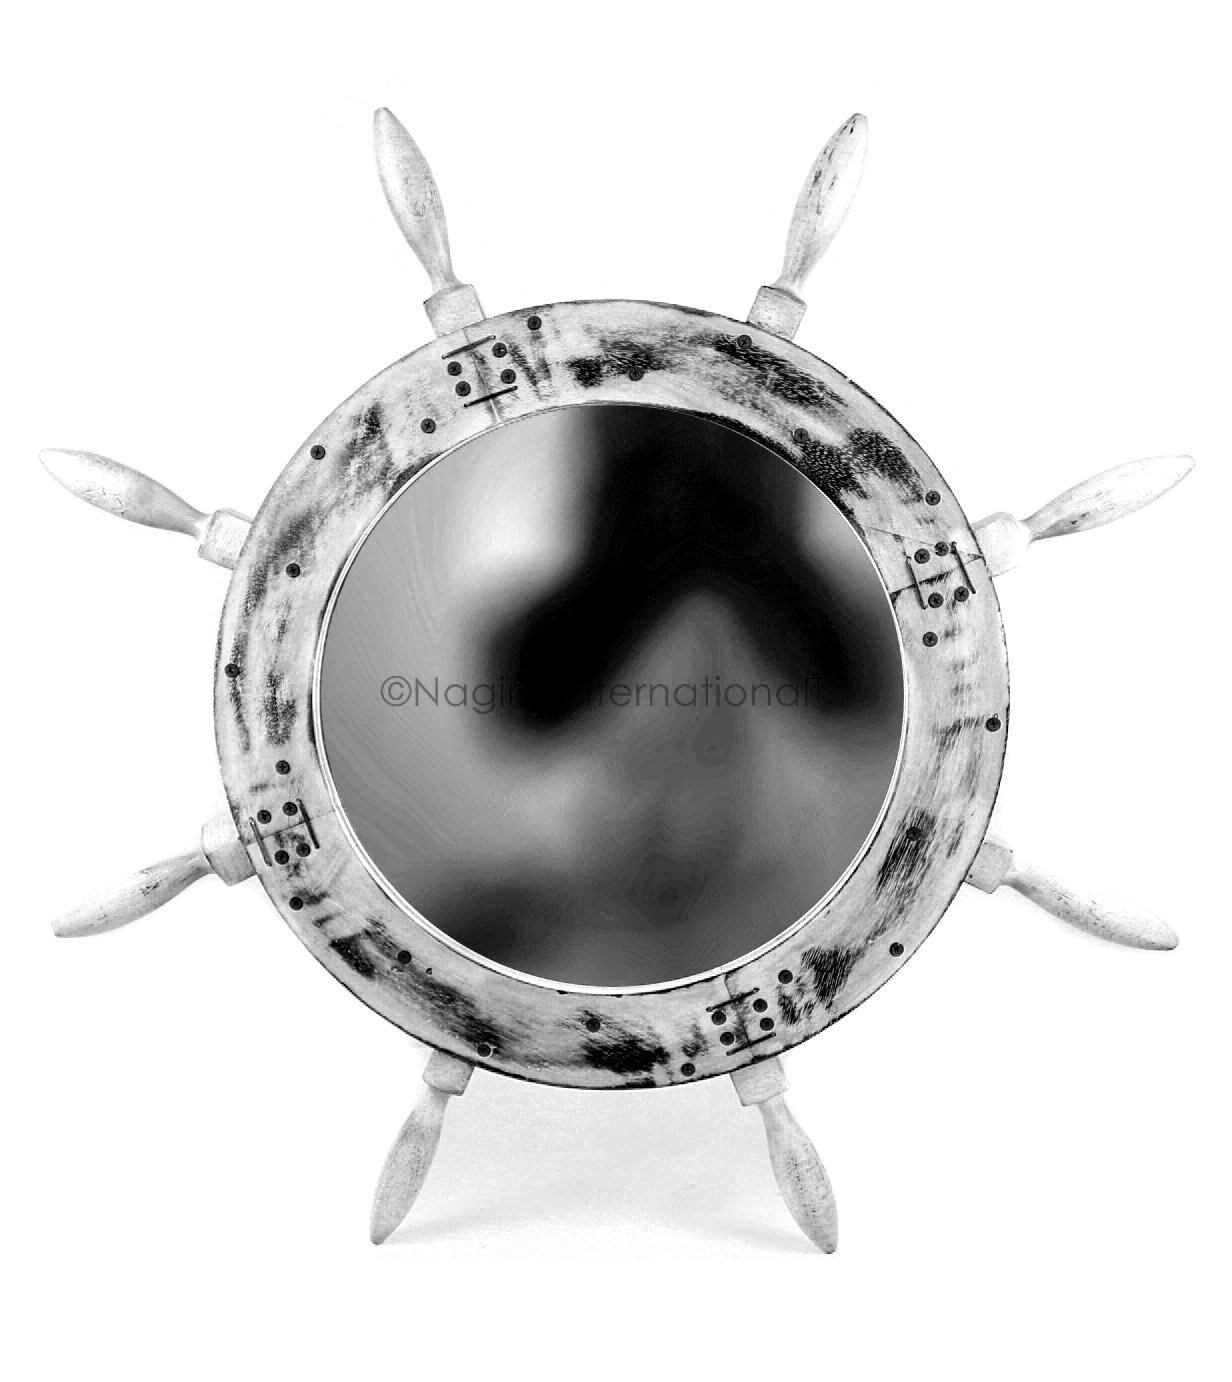 Rustic Black 18 Inches Rustic Grey Antique Nautical Maritime Wall Mounted Mirror Ship Wheel   Bay Home Decor & Gifts   Nagina International (36 Inches, Rustic White)